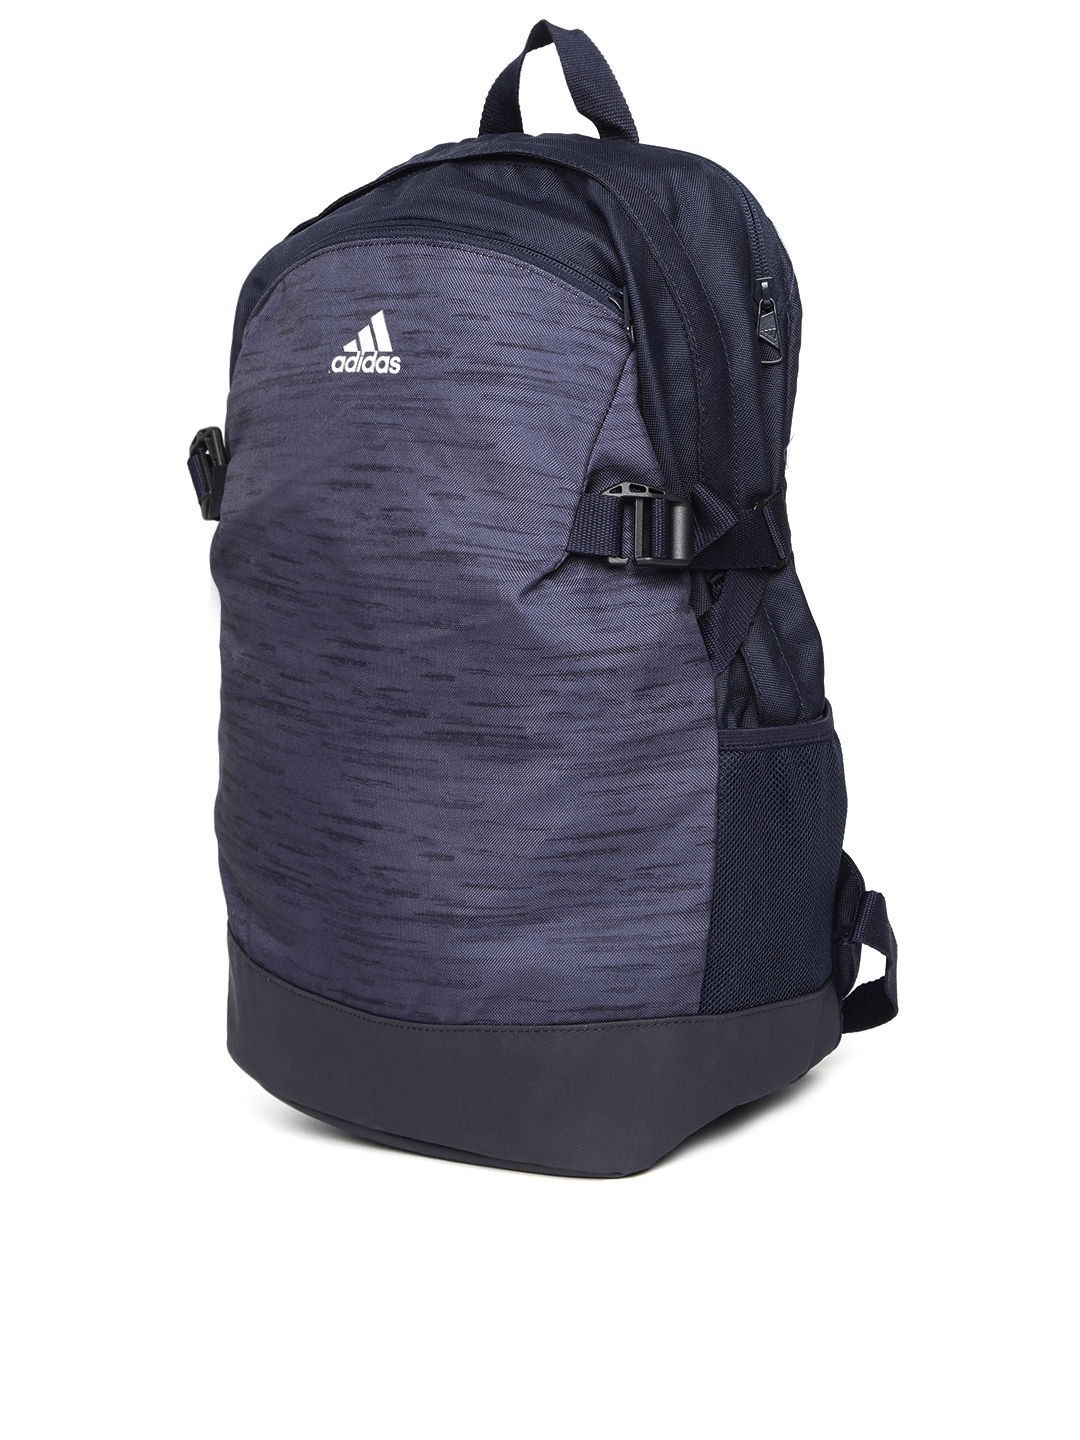 878d7e4a388e Buy ADIDAS Unisex Navy Power Laptop Backpack - Backpacks for Unisex ...